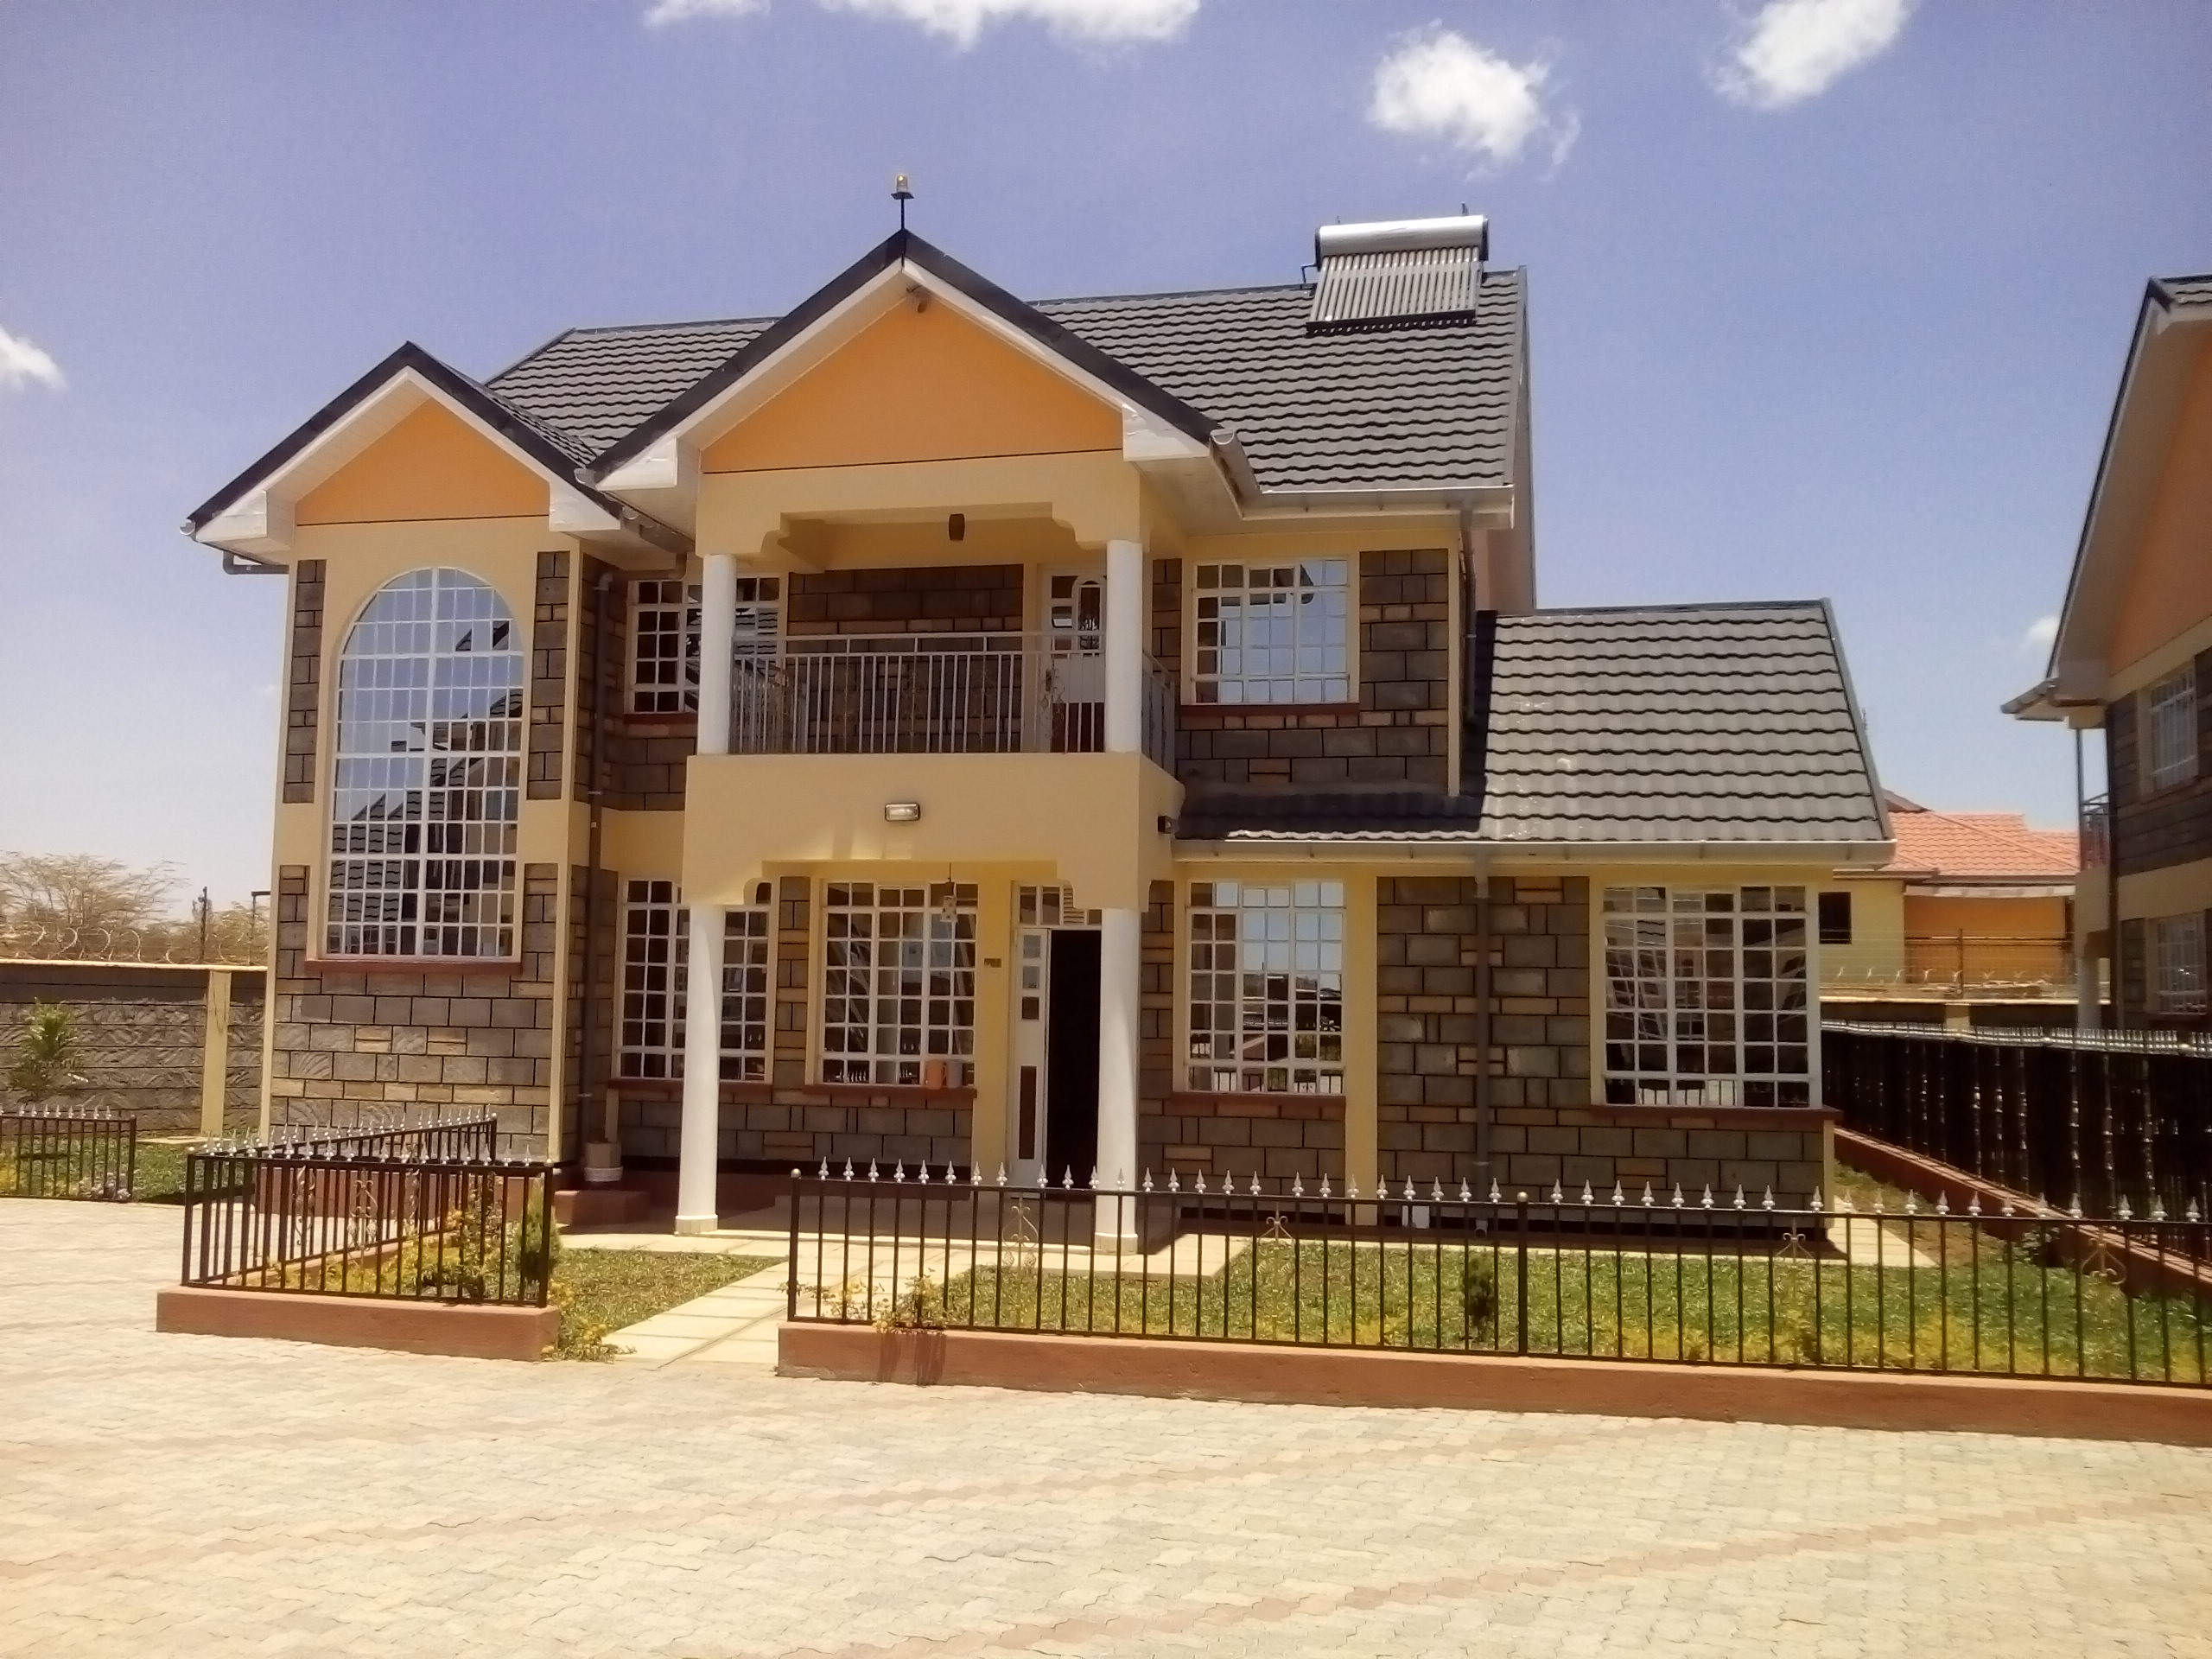 4 bedroom maisonette house plans kenya house plans - Bedroom house designs pictures ...